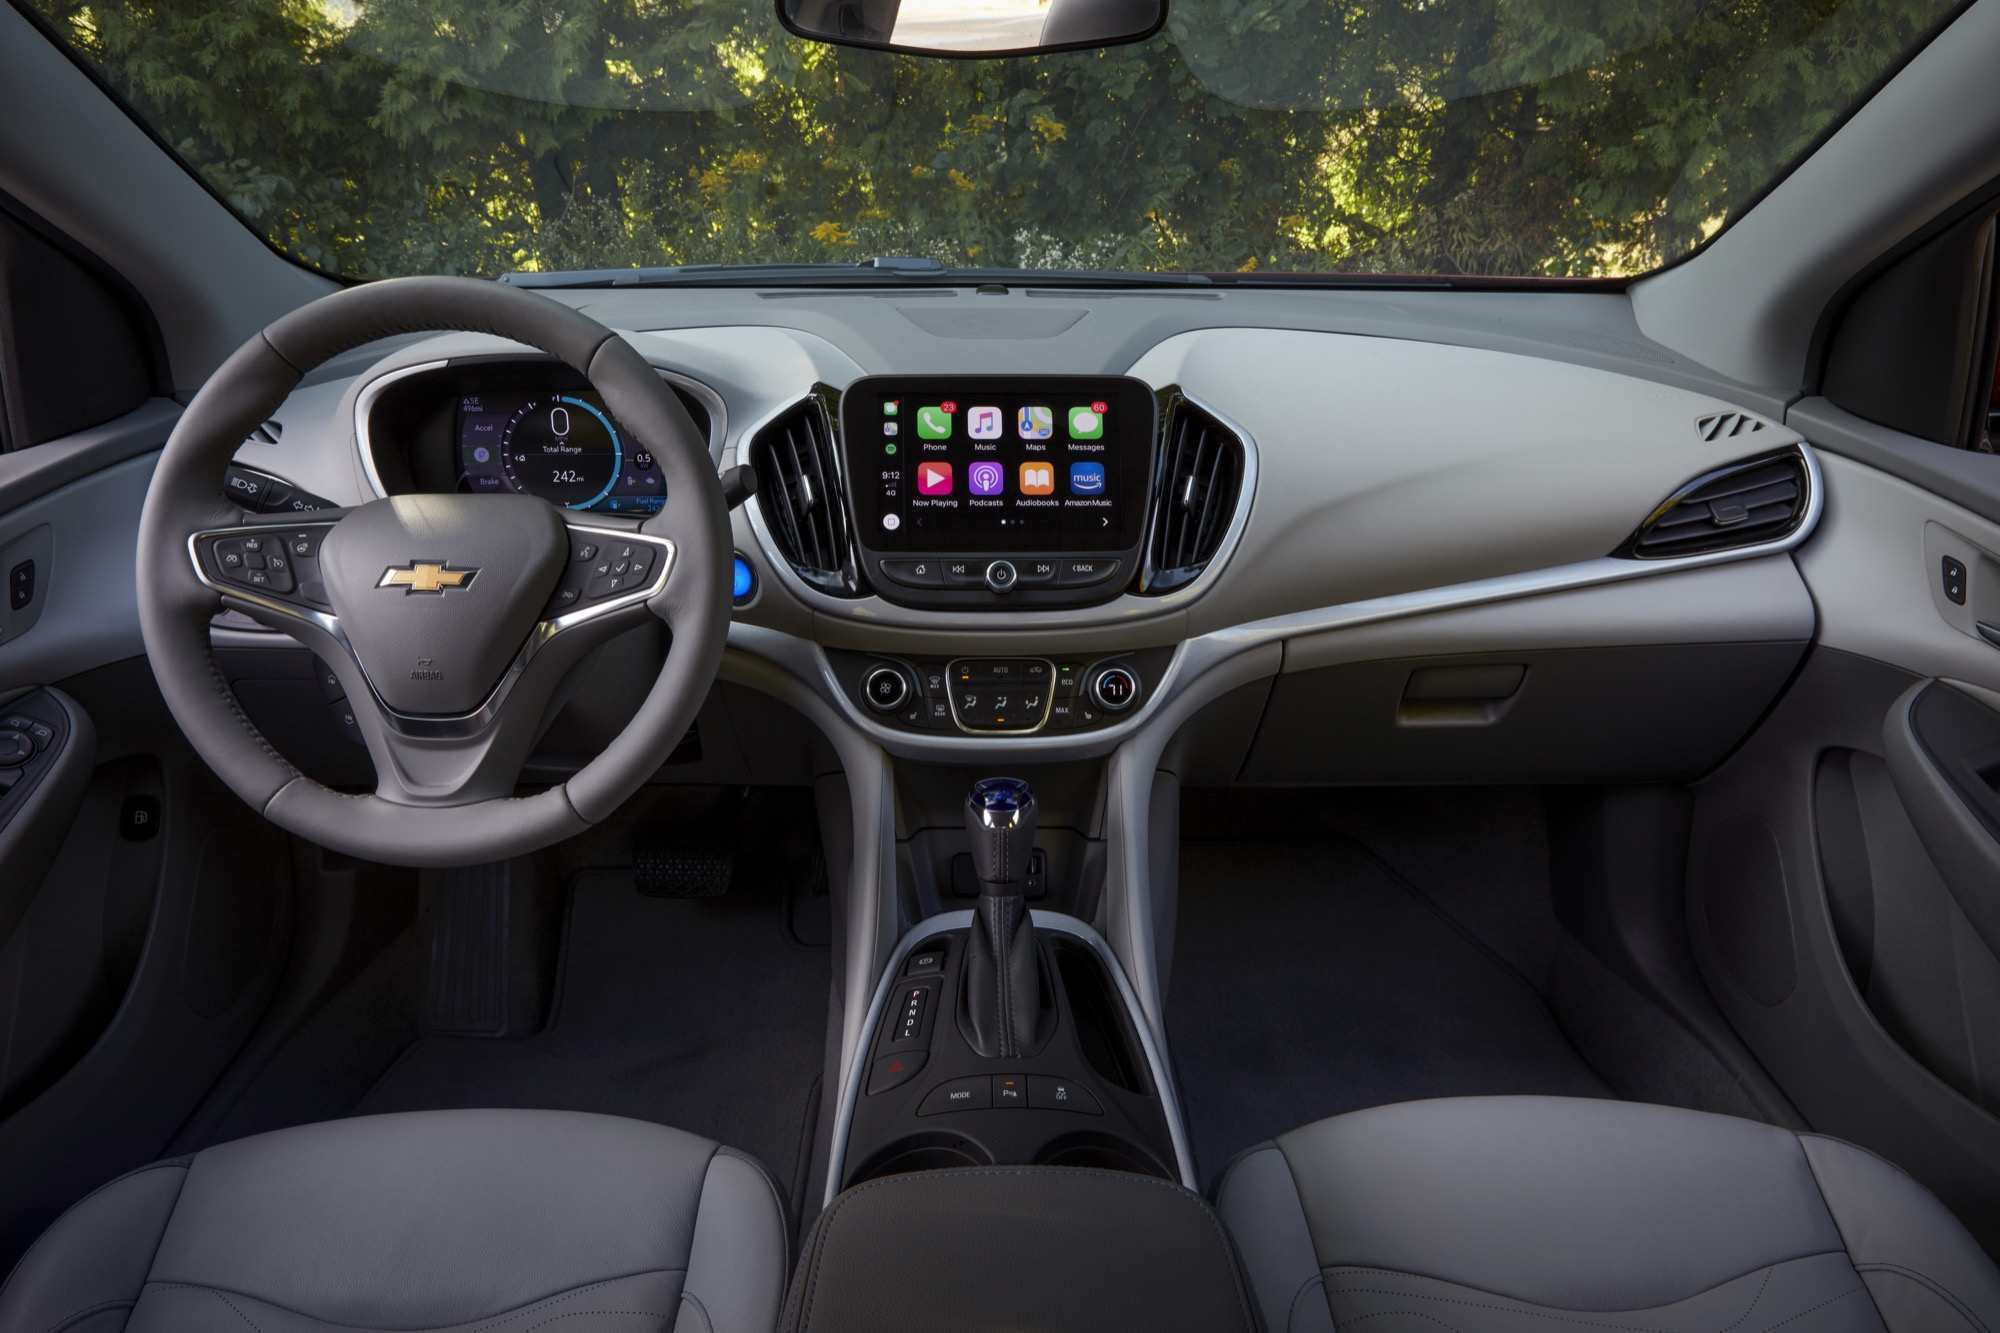 90 Gallery of Best Chevrolet 2019 Volt Concept Price and Review with Best Chevrolet 2019 Volt Concept